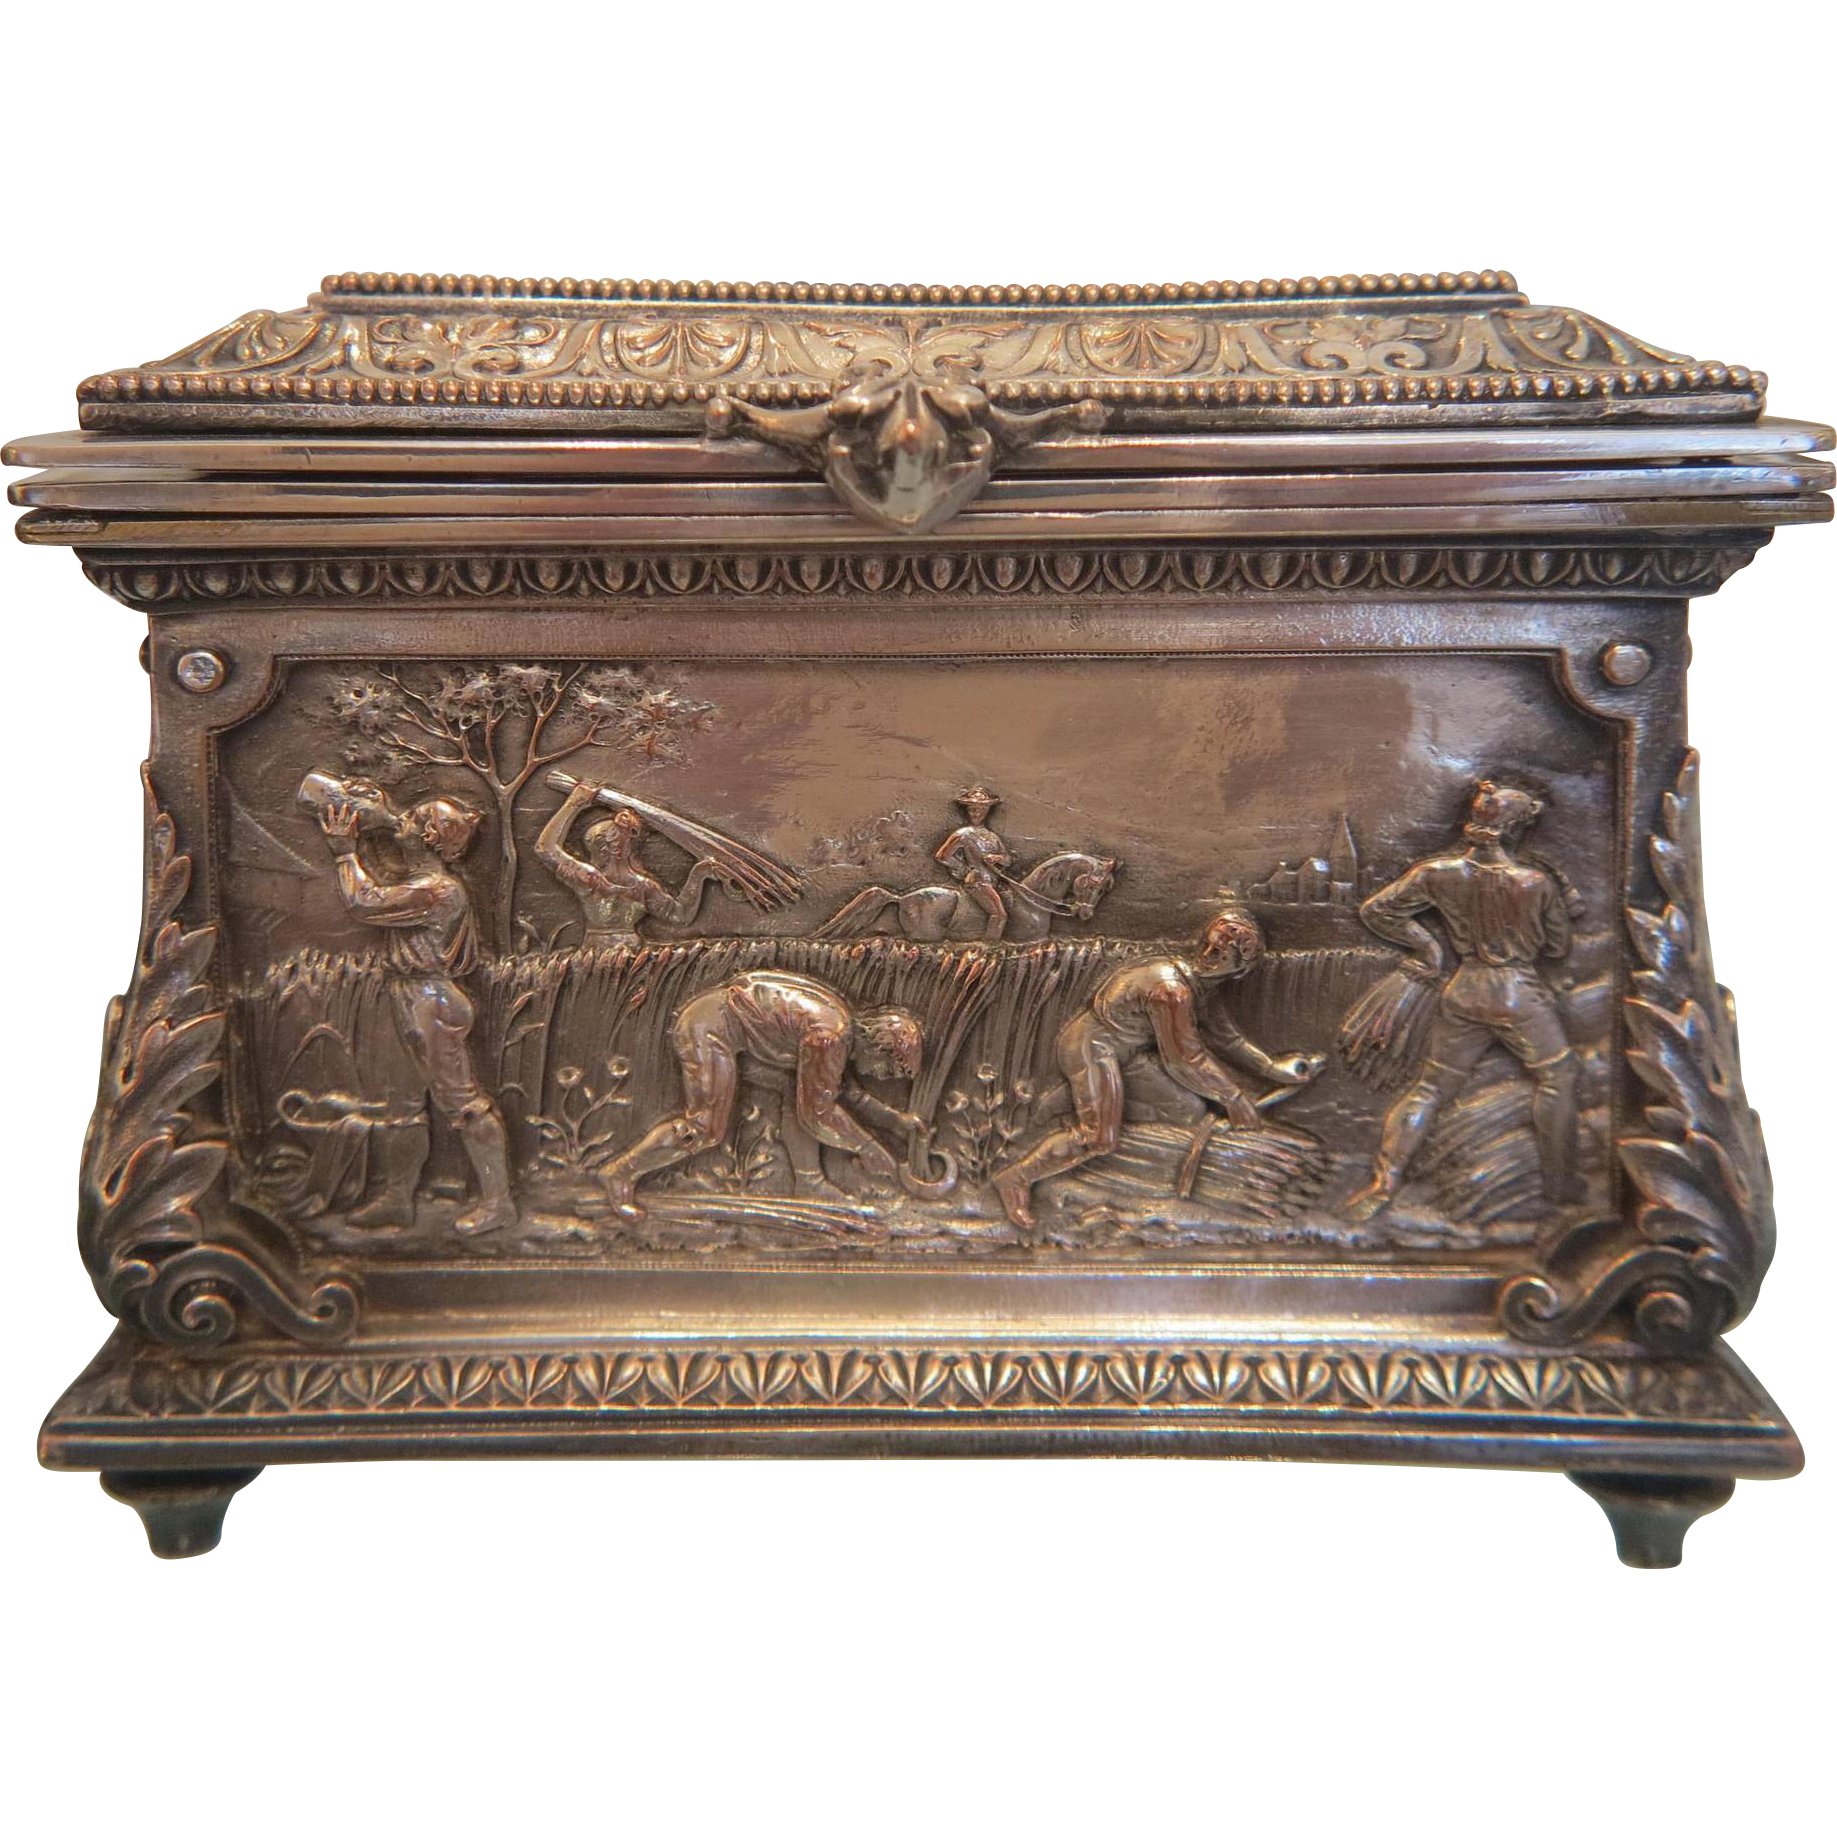 Antique Italian silver plated copper jewelry casket, 19th century